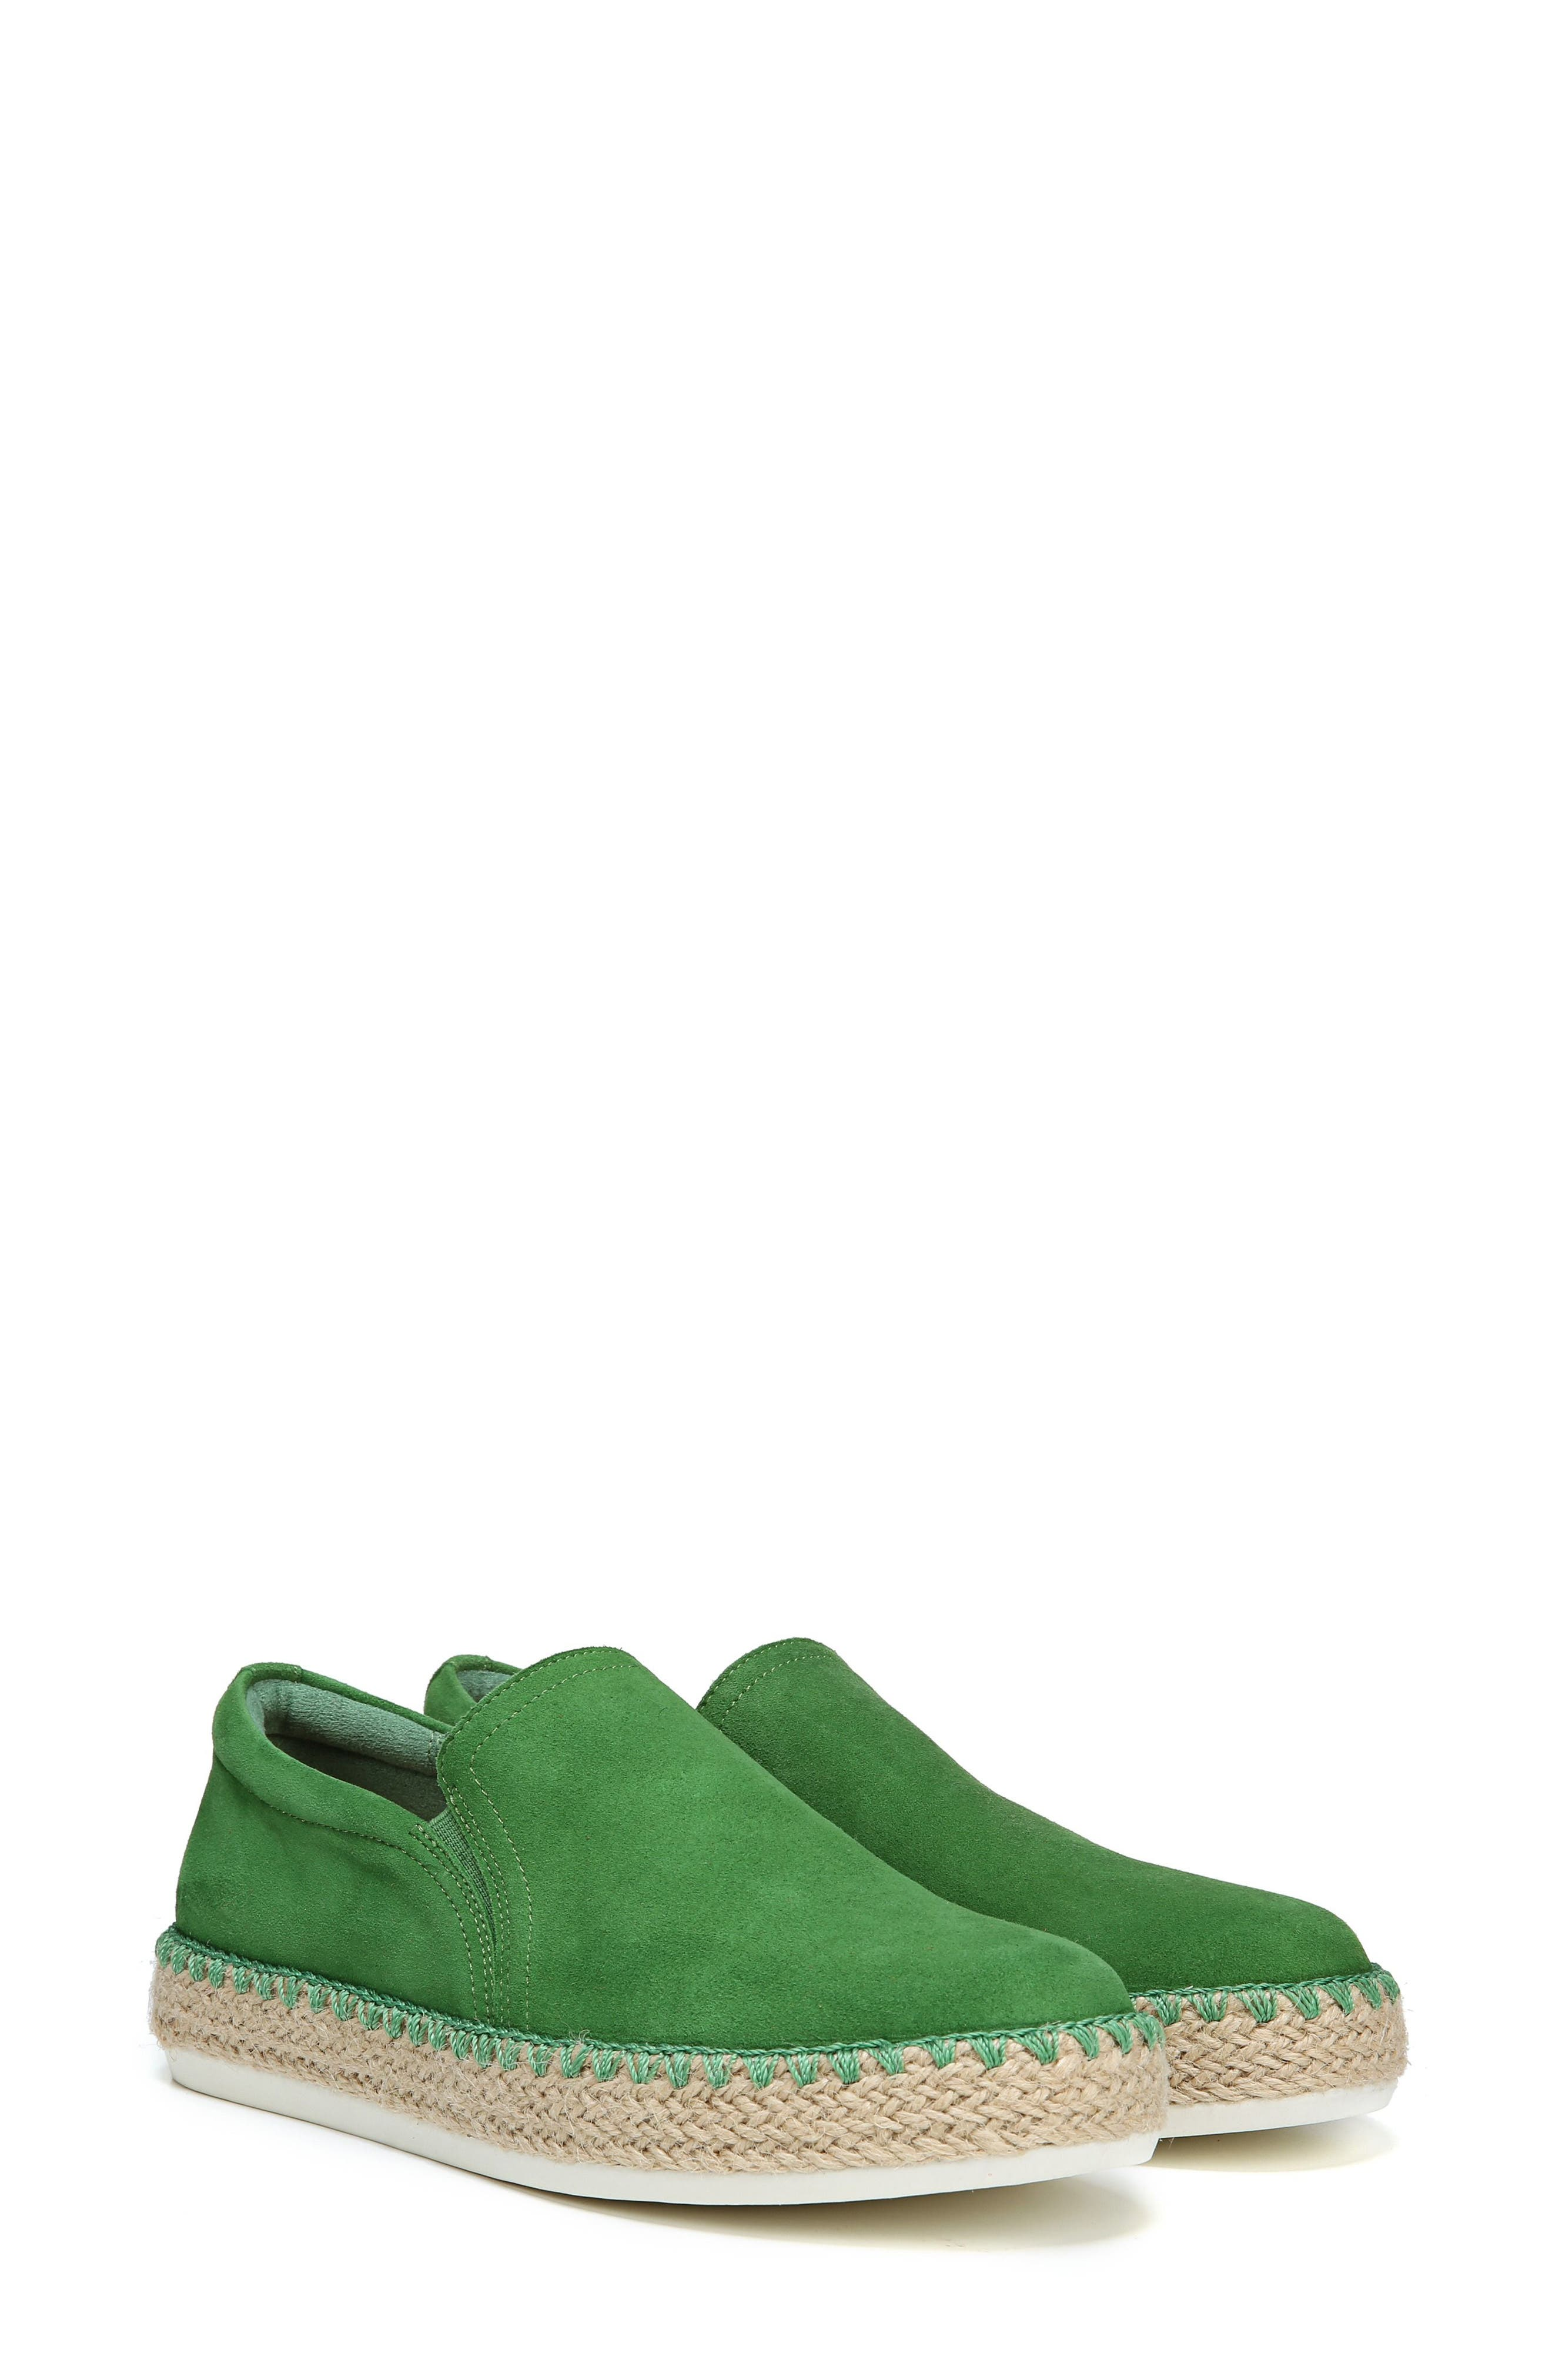 Sunnie Slip-On Sneaker,                         Main,                         color, GREEN SUEDE